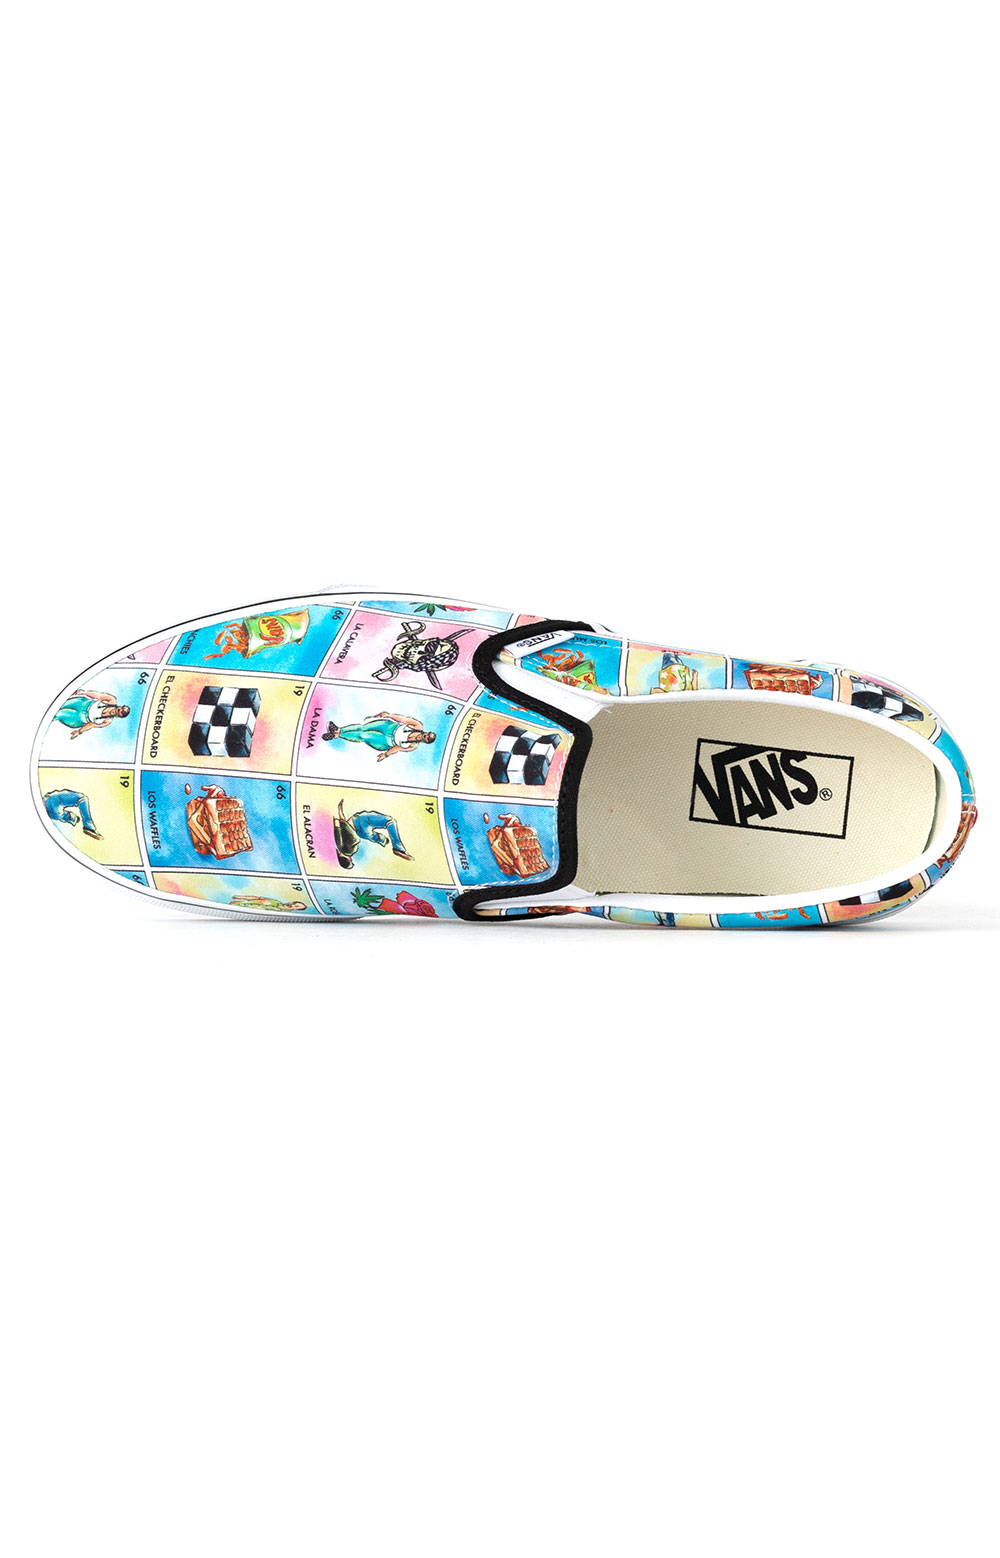 (U38WN1) Los Vans Classic Slip-On Shoes - Multi/True White  2